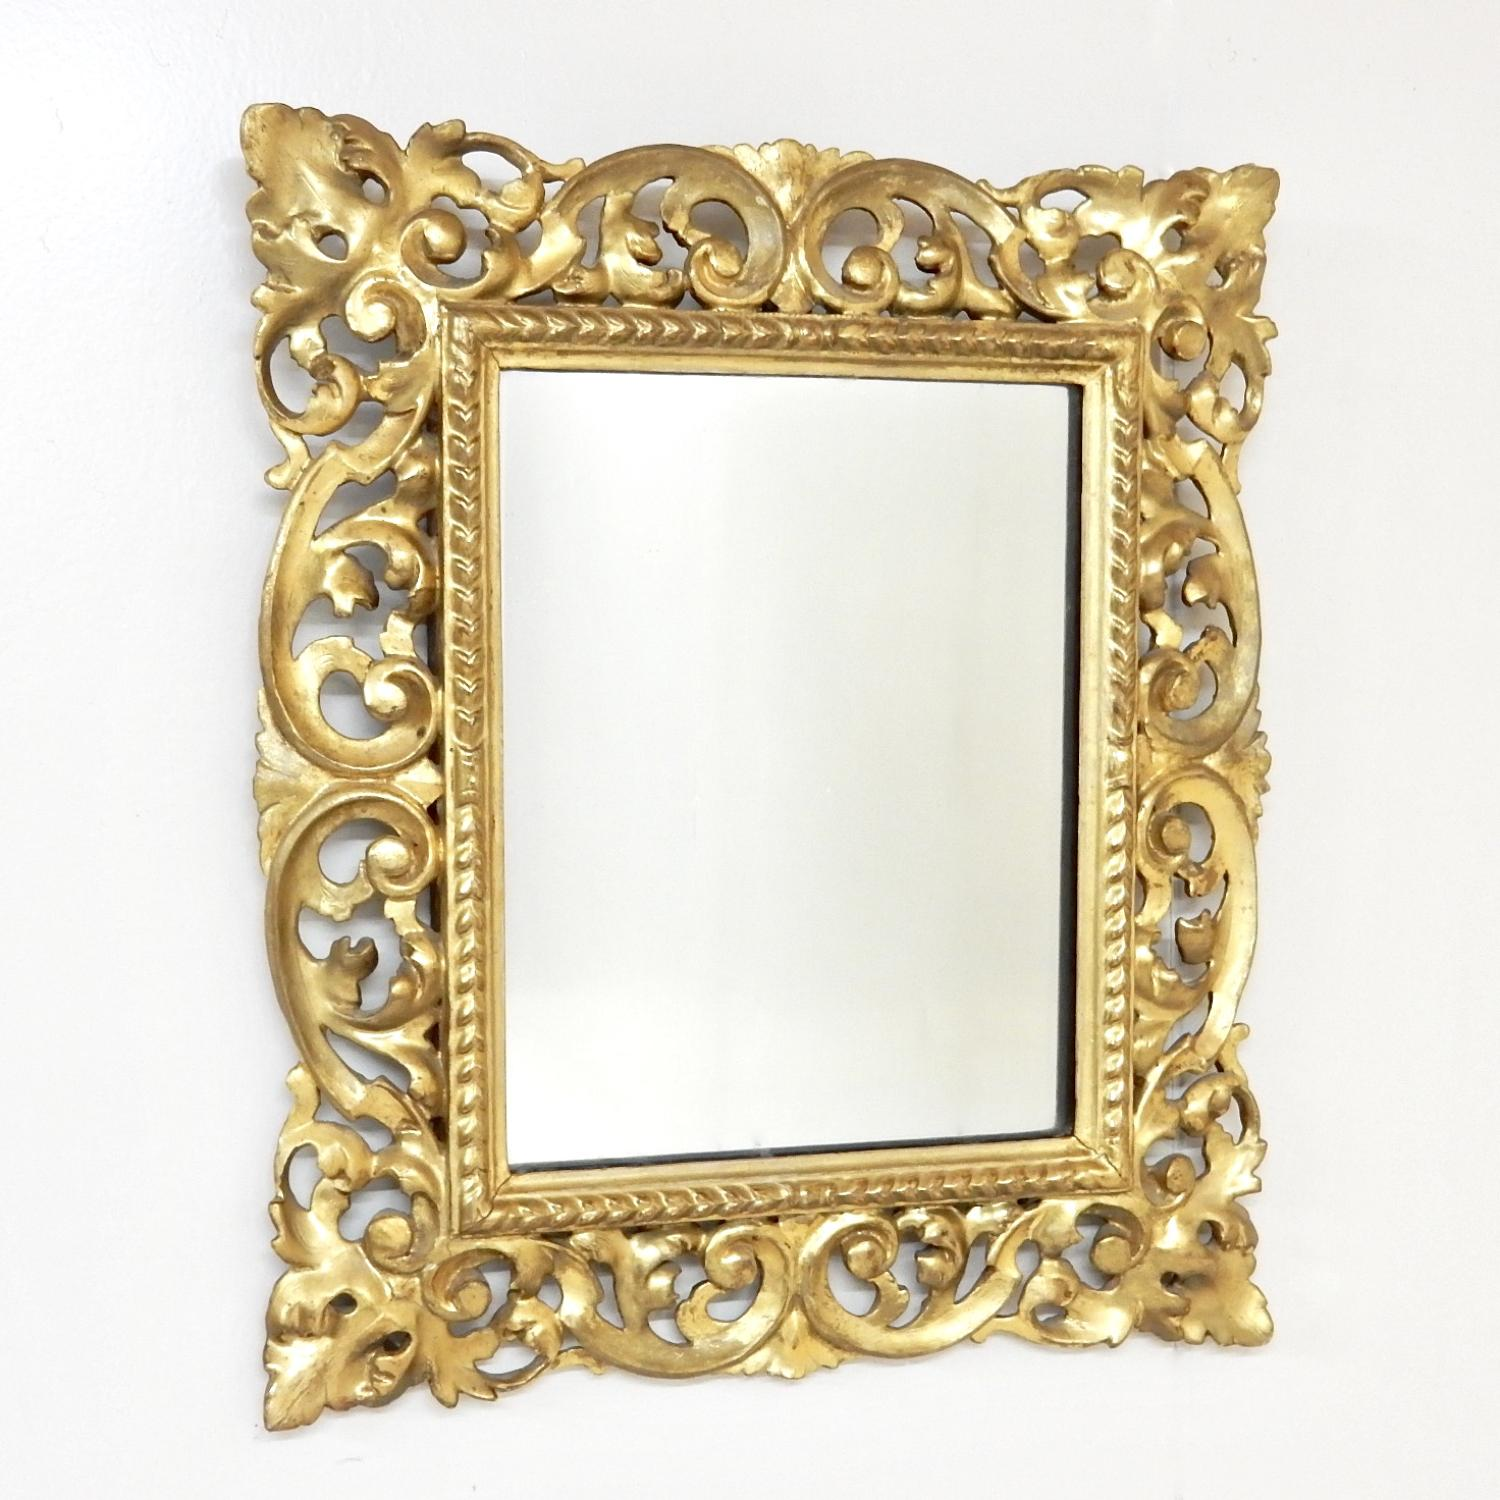 Antique Florentine Wall Mirror